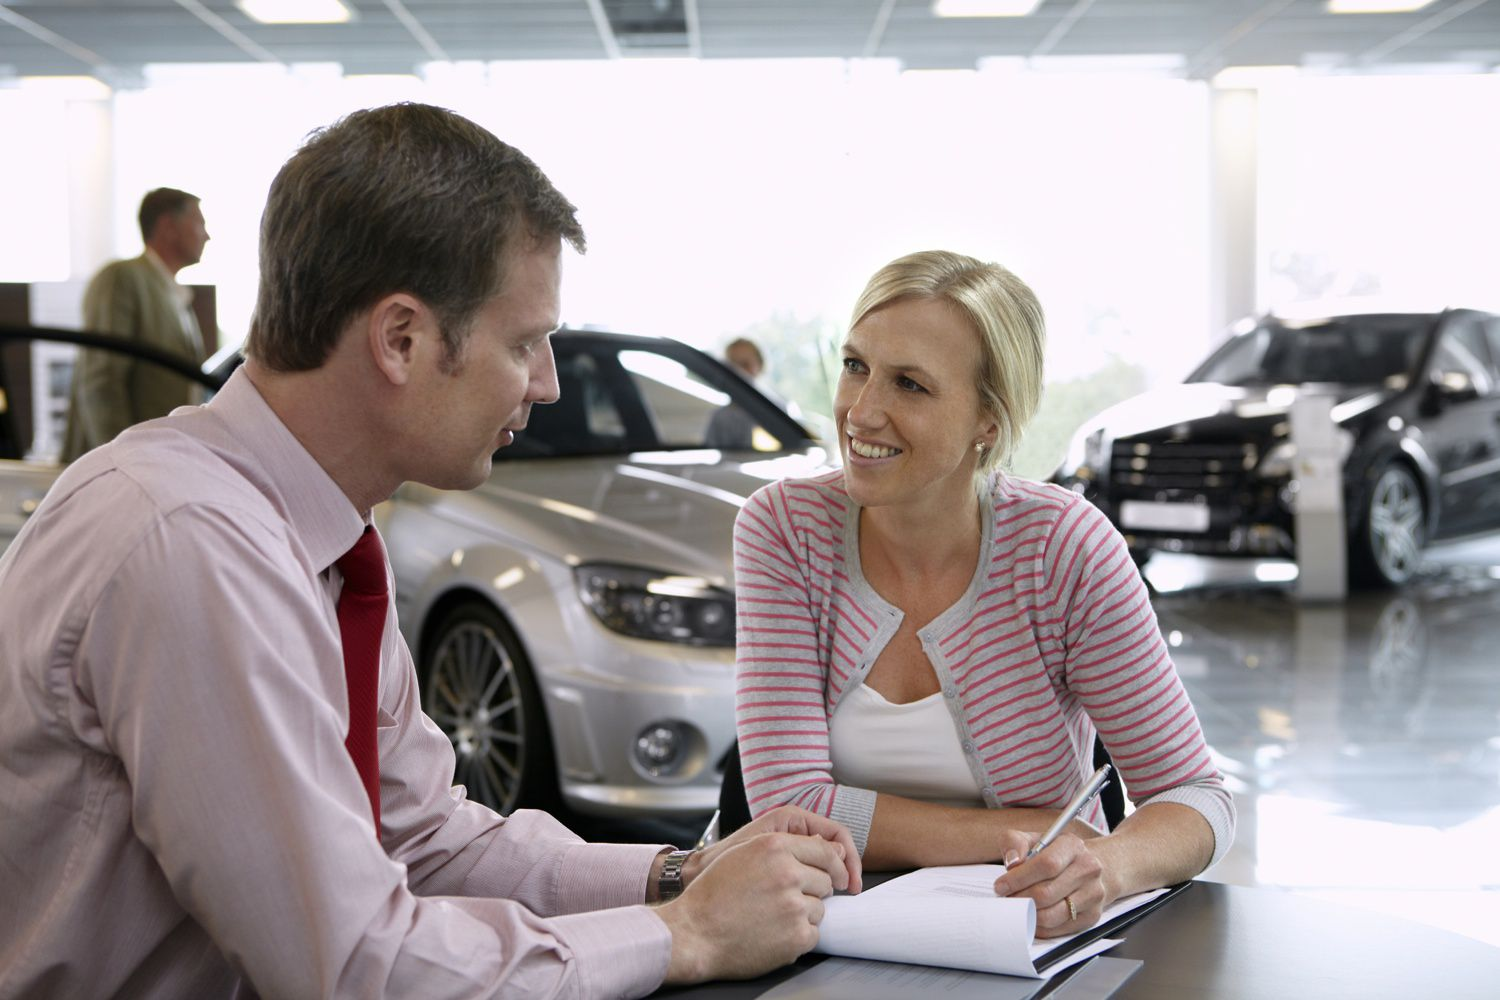 Are Interest Free Car Loans Too Good To Be True